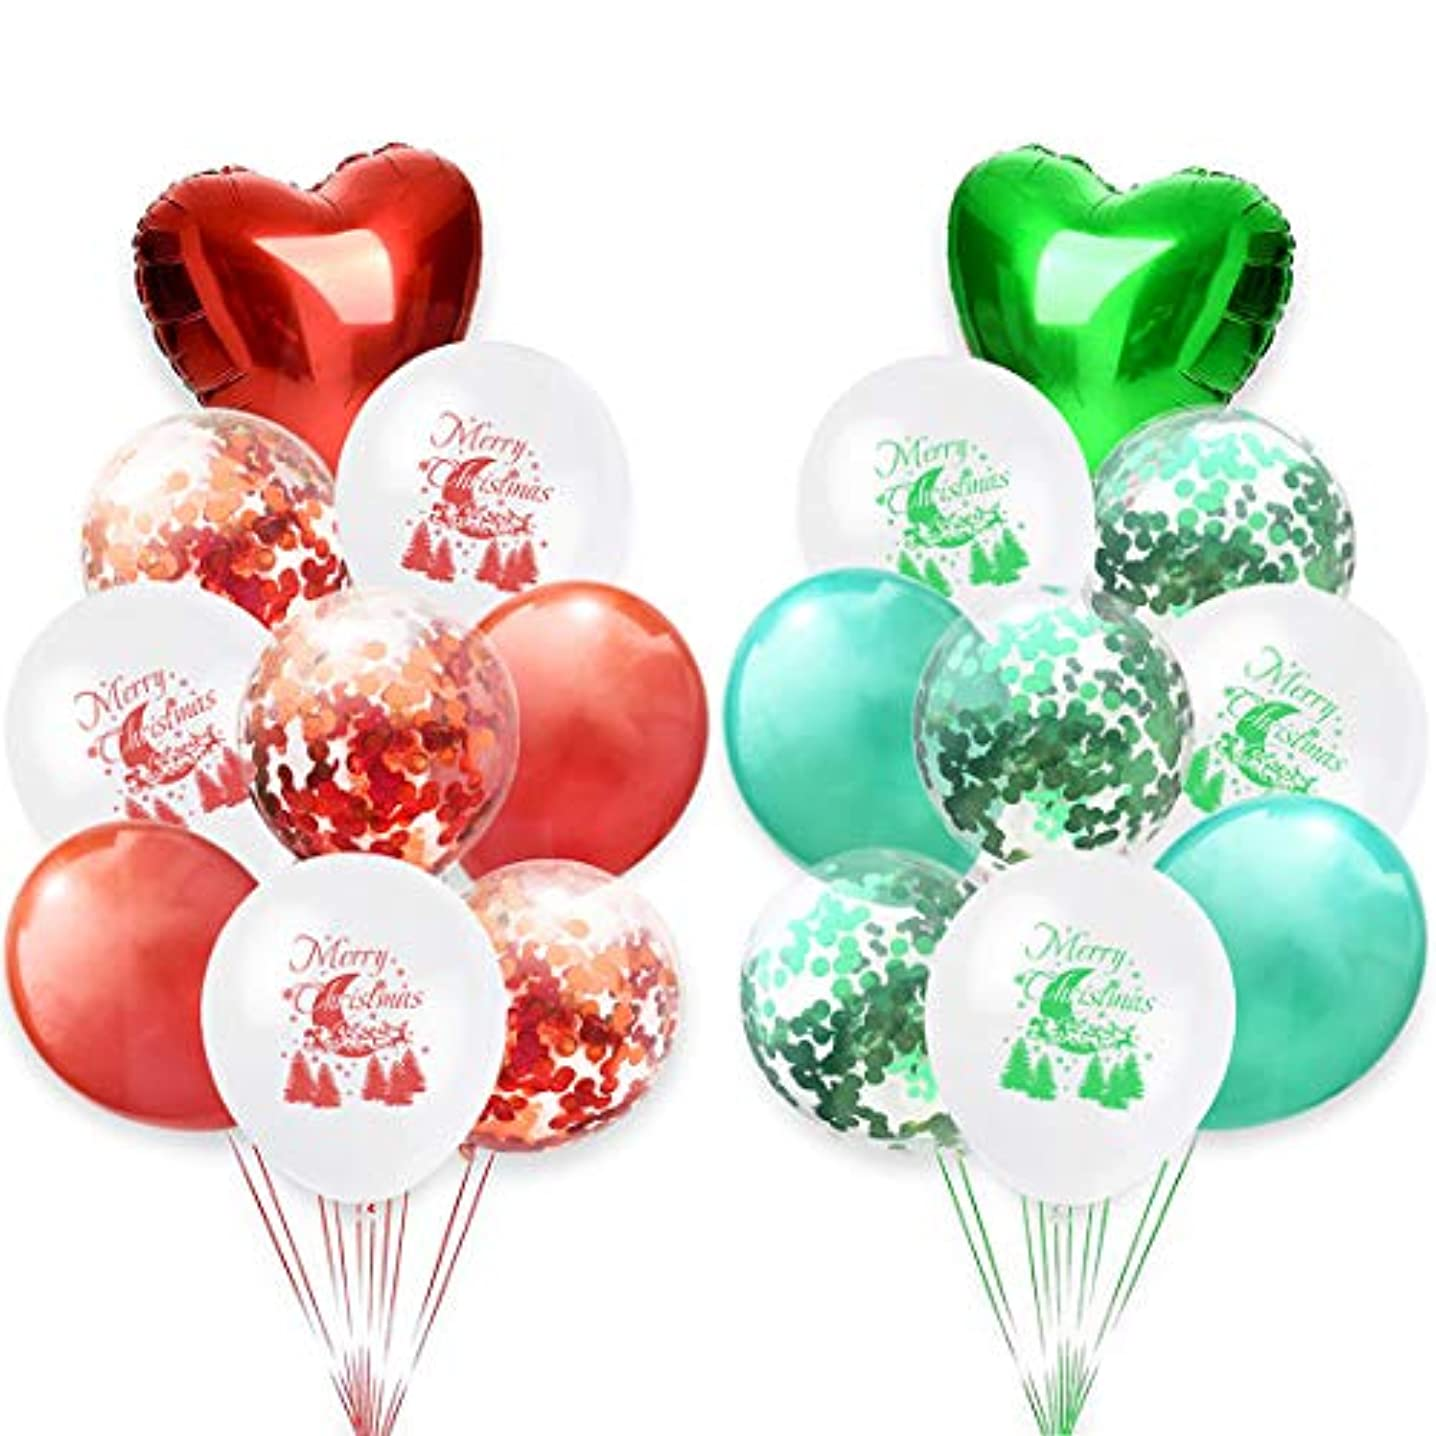 Merry Christmas Balloons Party Decorations Set, 12 Inches Confetti Green & Red Latex Balloons, Aluminum Foil Santa Claus,Tree,Christmas Banner (Style2-18pcs)